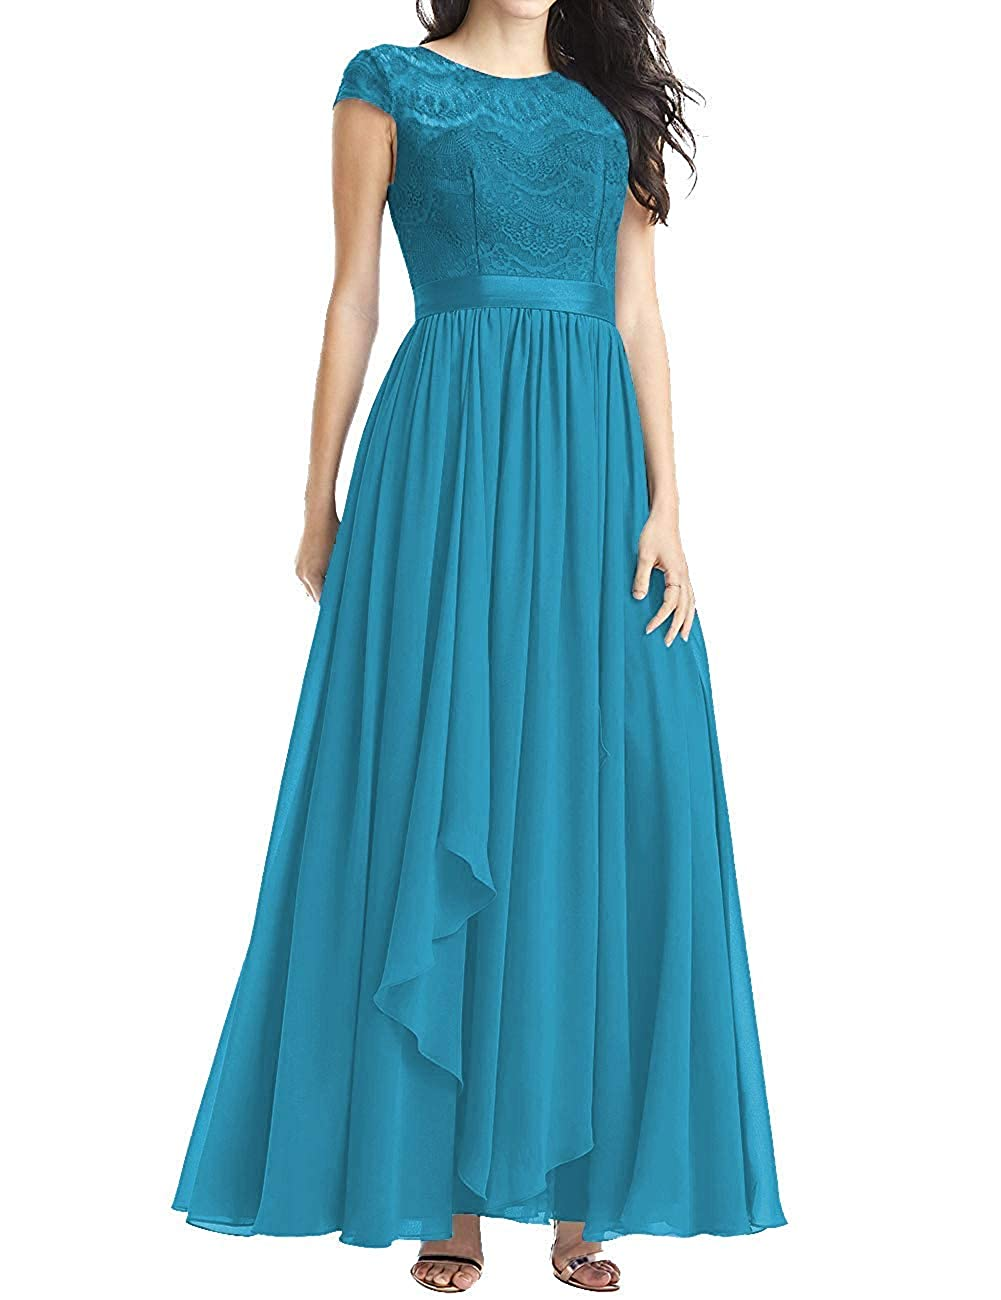 bluee Mother of The Bride Dresses Plus Size Evening Dresses with Sleeves Formal Gowns for Women Evening Dress